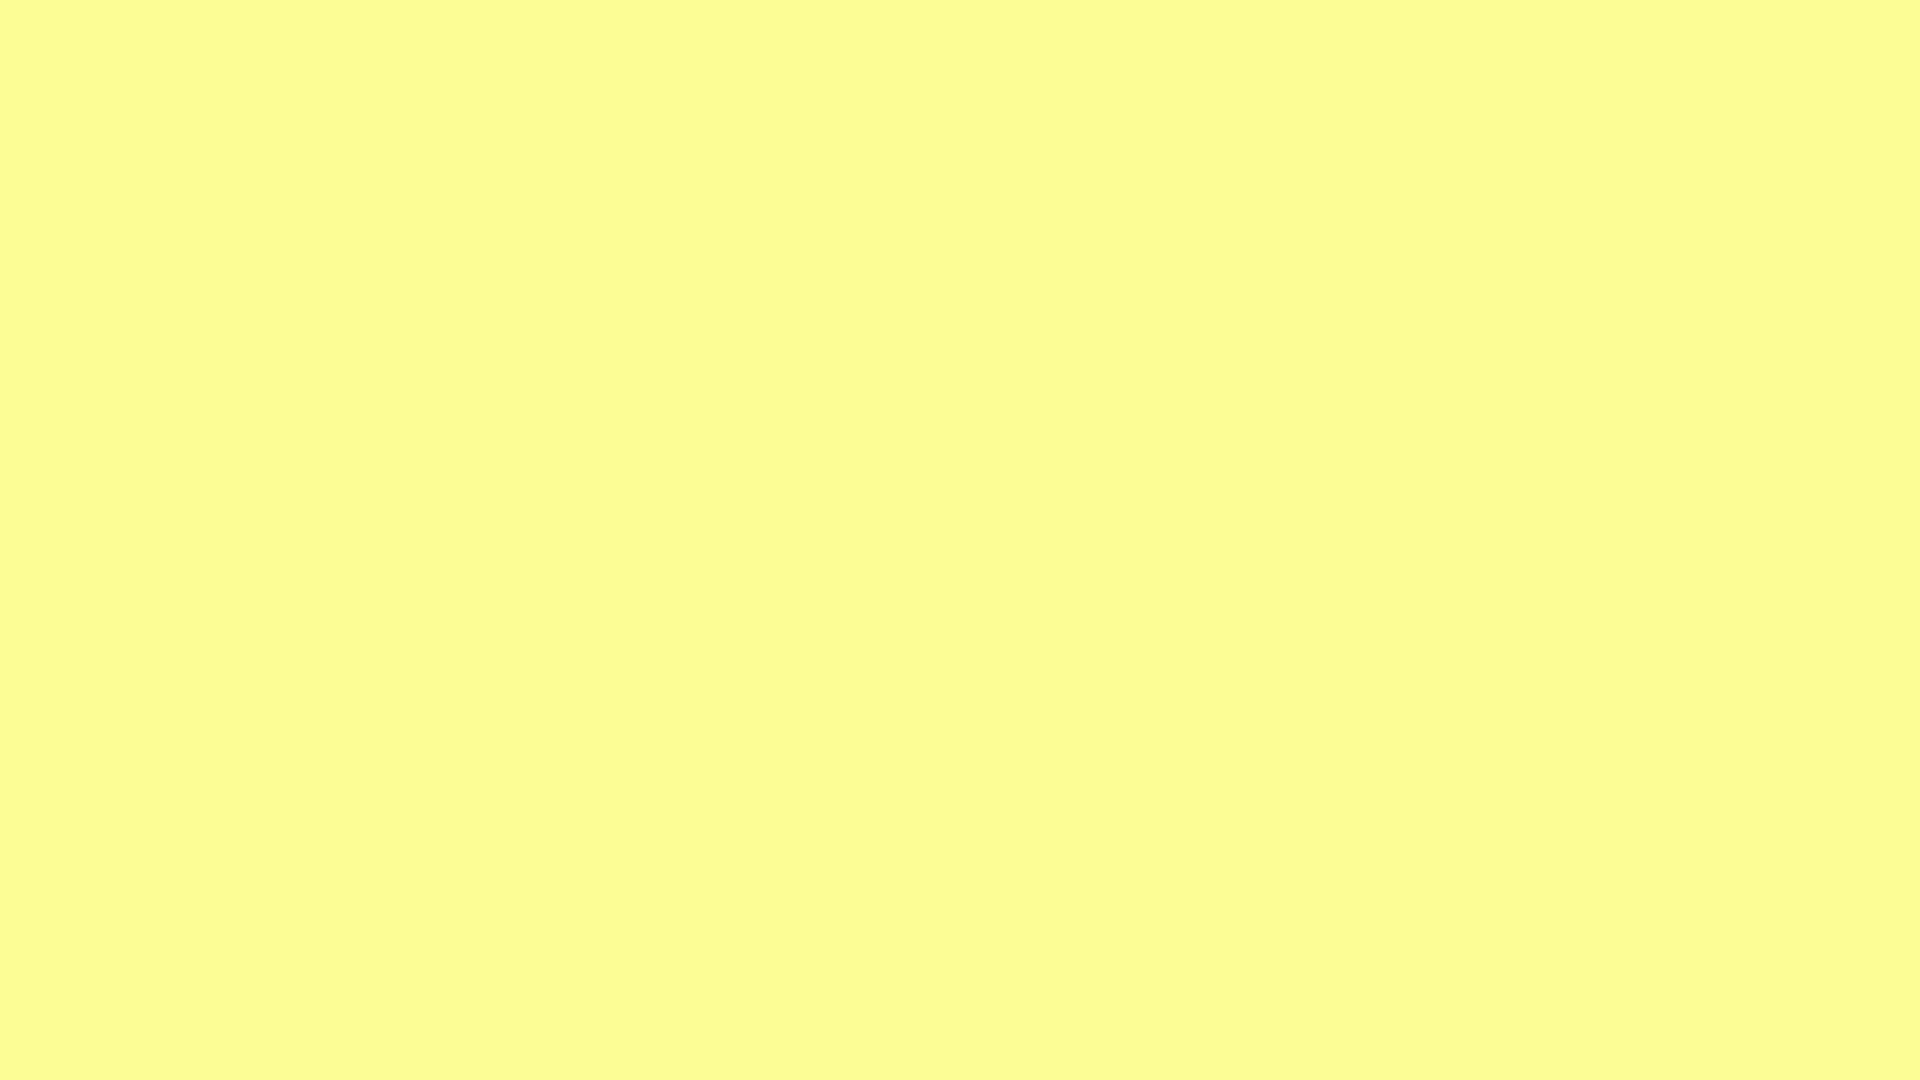 1920x1080 Pastel Yellow Solid Color Background